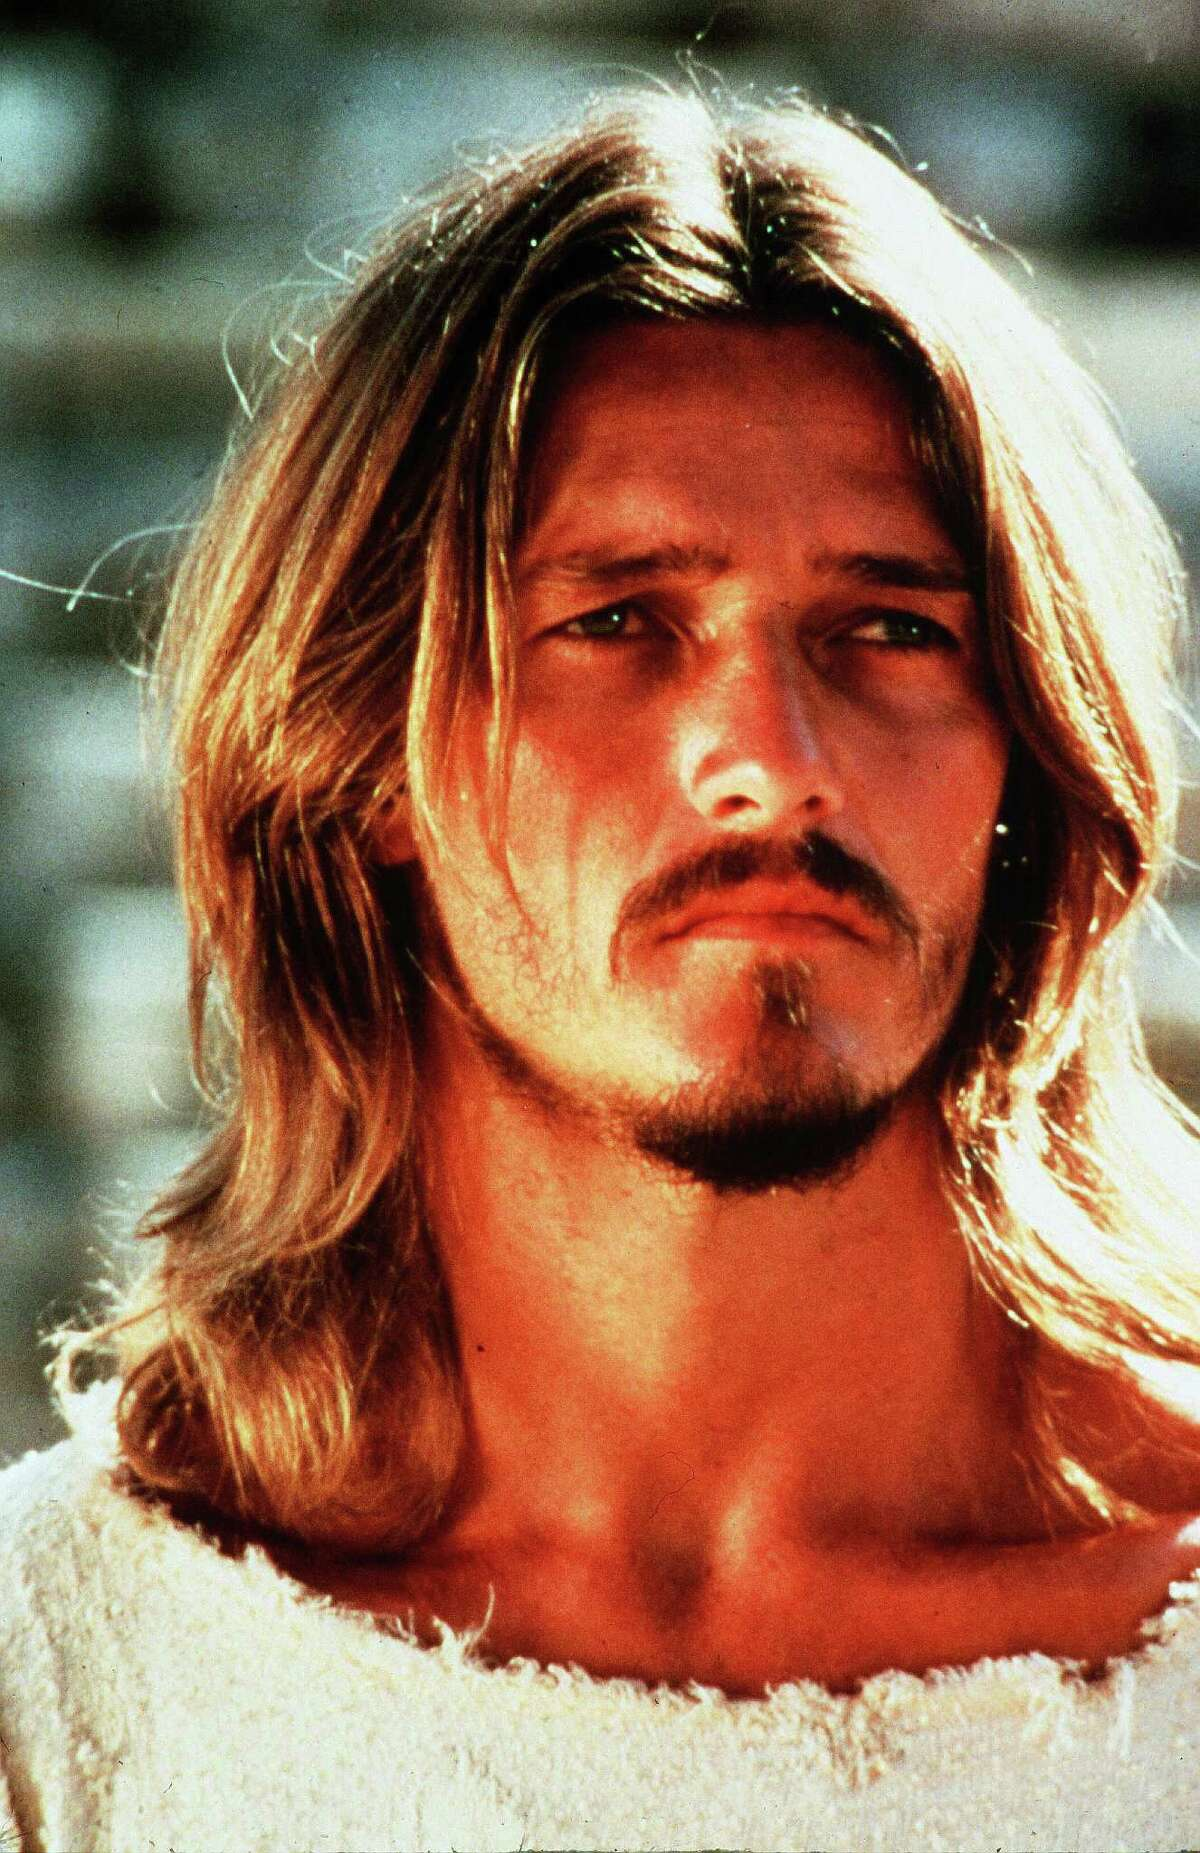 """Ted Neeley, who starred in the movie """"Jesus Christ Superstar,"""" will appear at The Palace Danbury for a screening of the film's sing-along version on June 22. He'll also talk about the movie; the event is called """"The Jesus Christ Superstar Sing-Along Experience."""""""